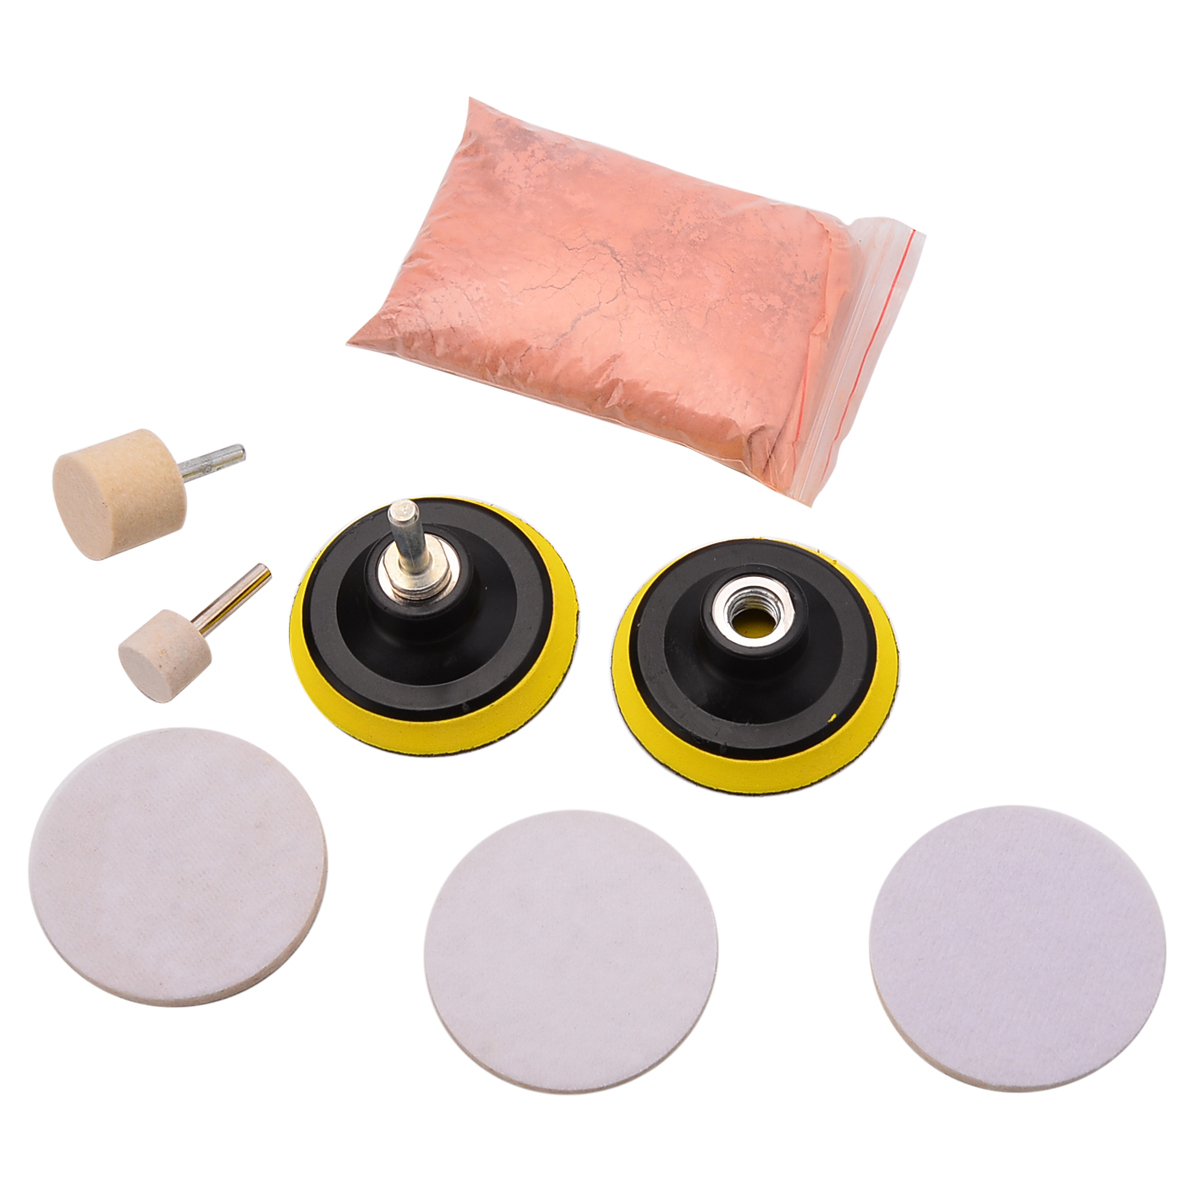 Back To Search Resultstools Helpful Glass Scrach Remover 8 Oz Cerium Oxide Polishing Kit And 3 Inch Wheel